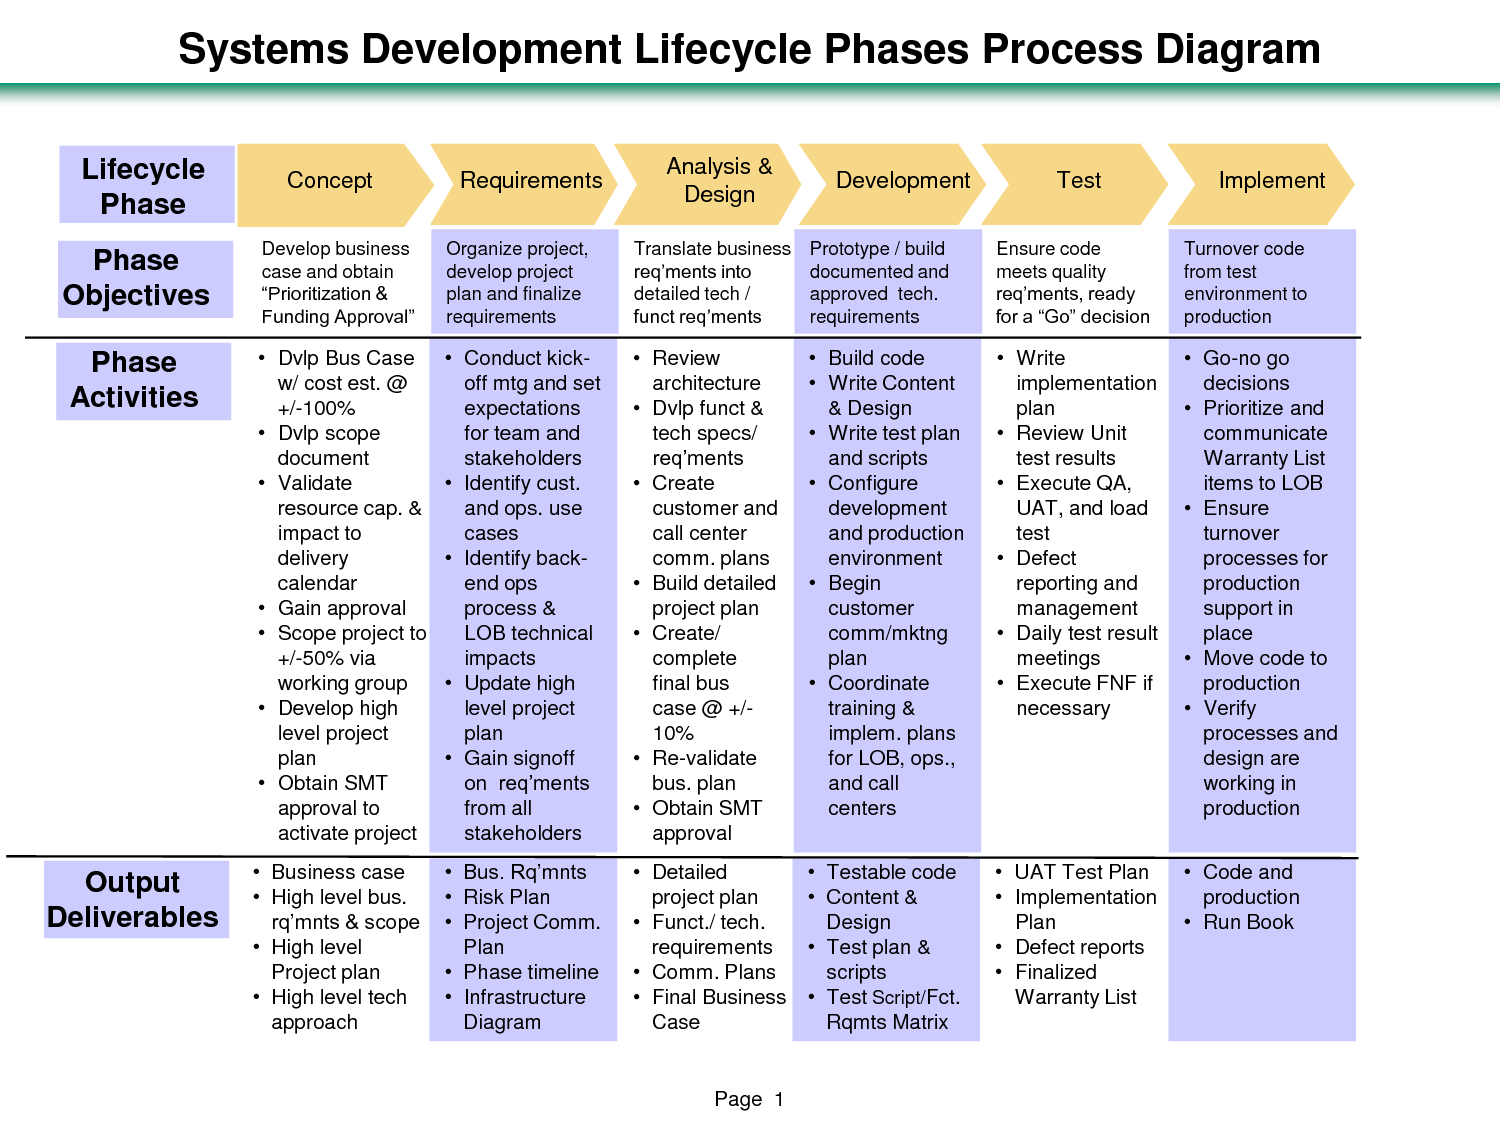 Software Testing Life Cycle Diagram Mikuni Flat Slide Carb Project Phases Systems Development Lifecycle